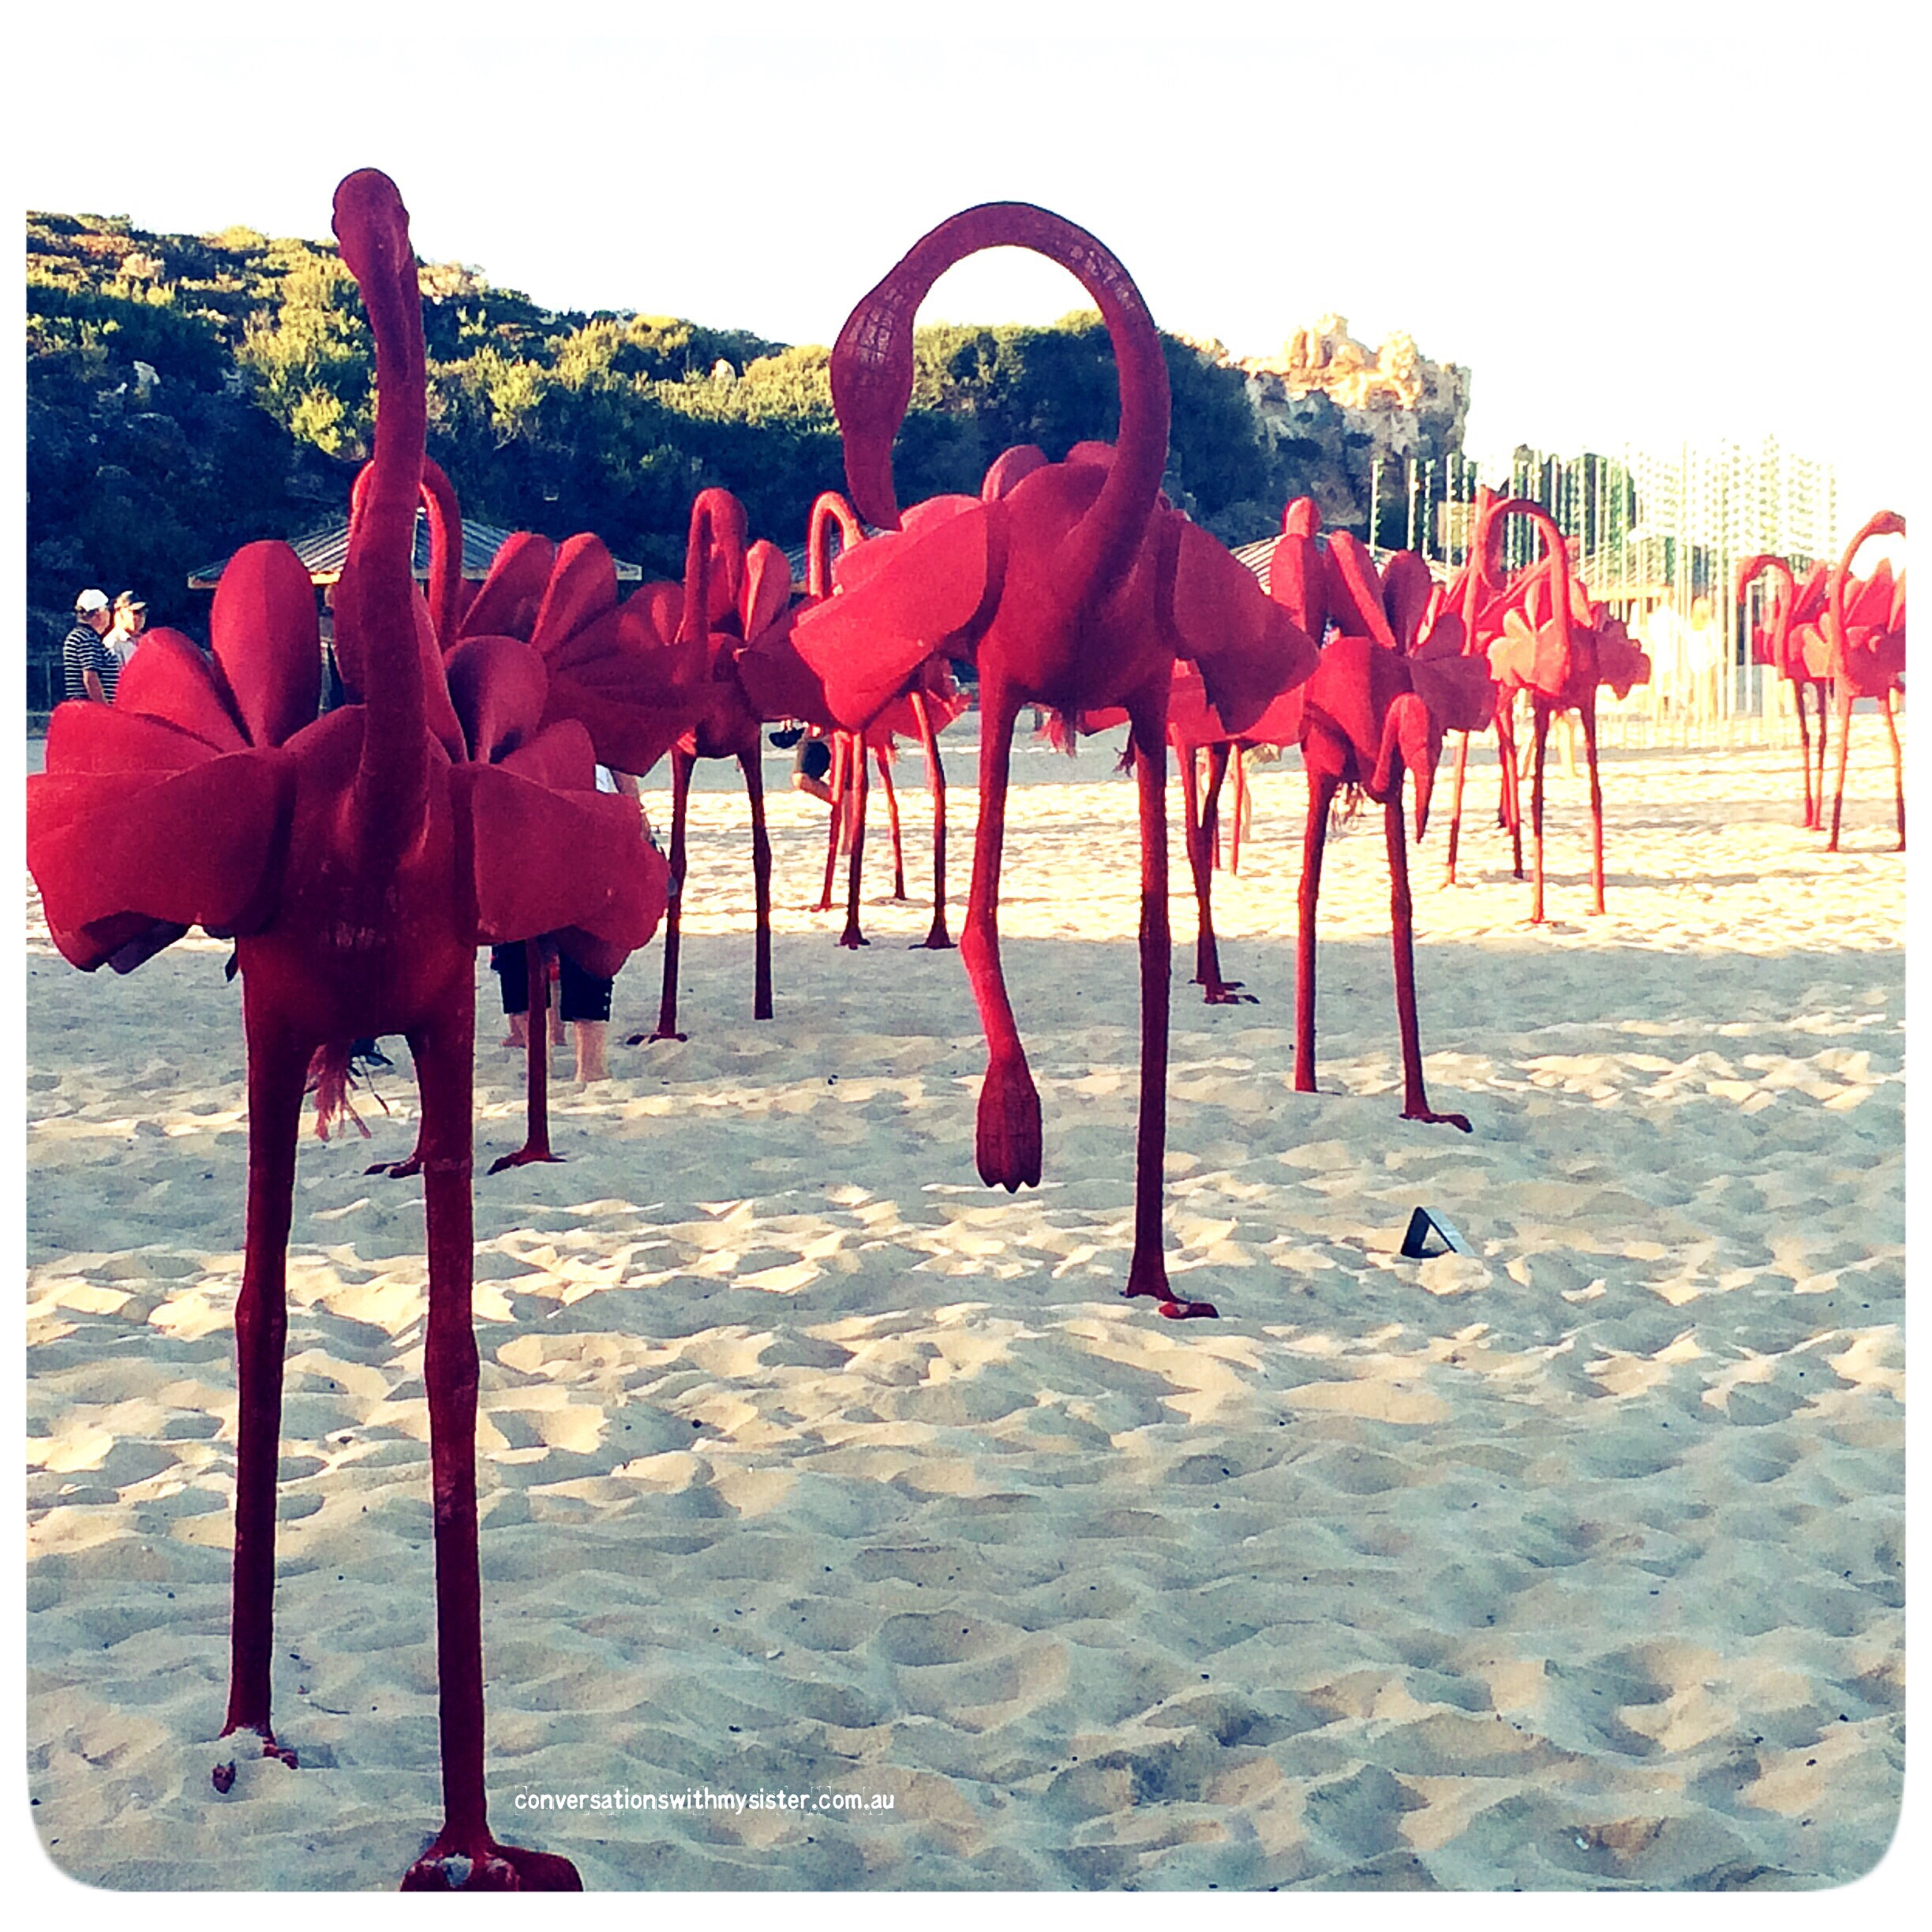 conversationswithmysiser_sculptures by the sea